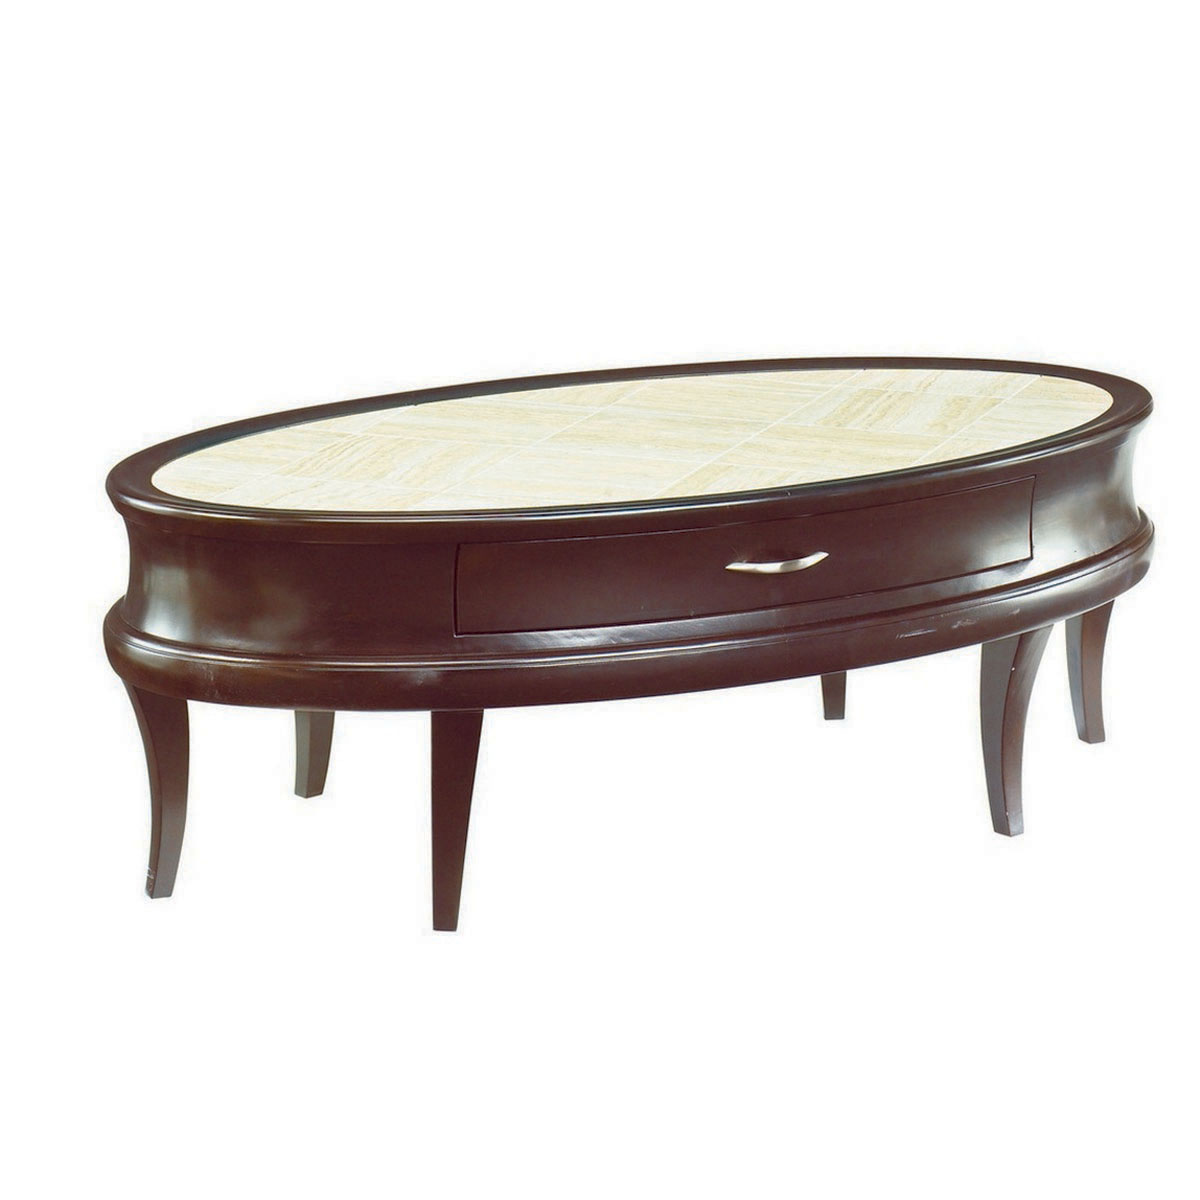 Image of: Coffee table sets oval